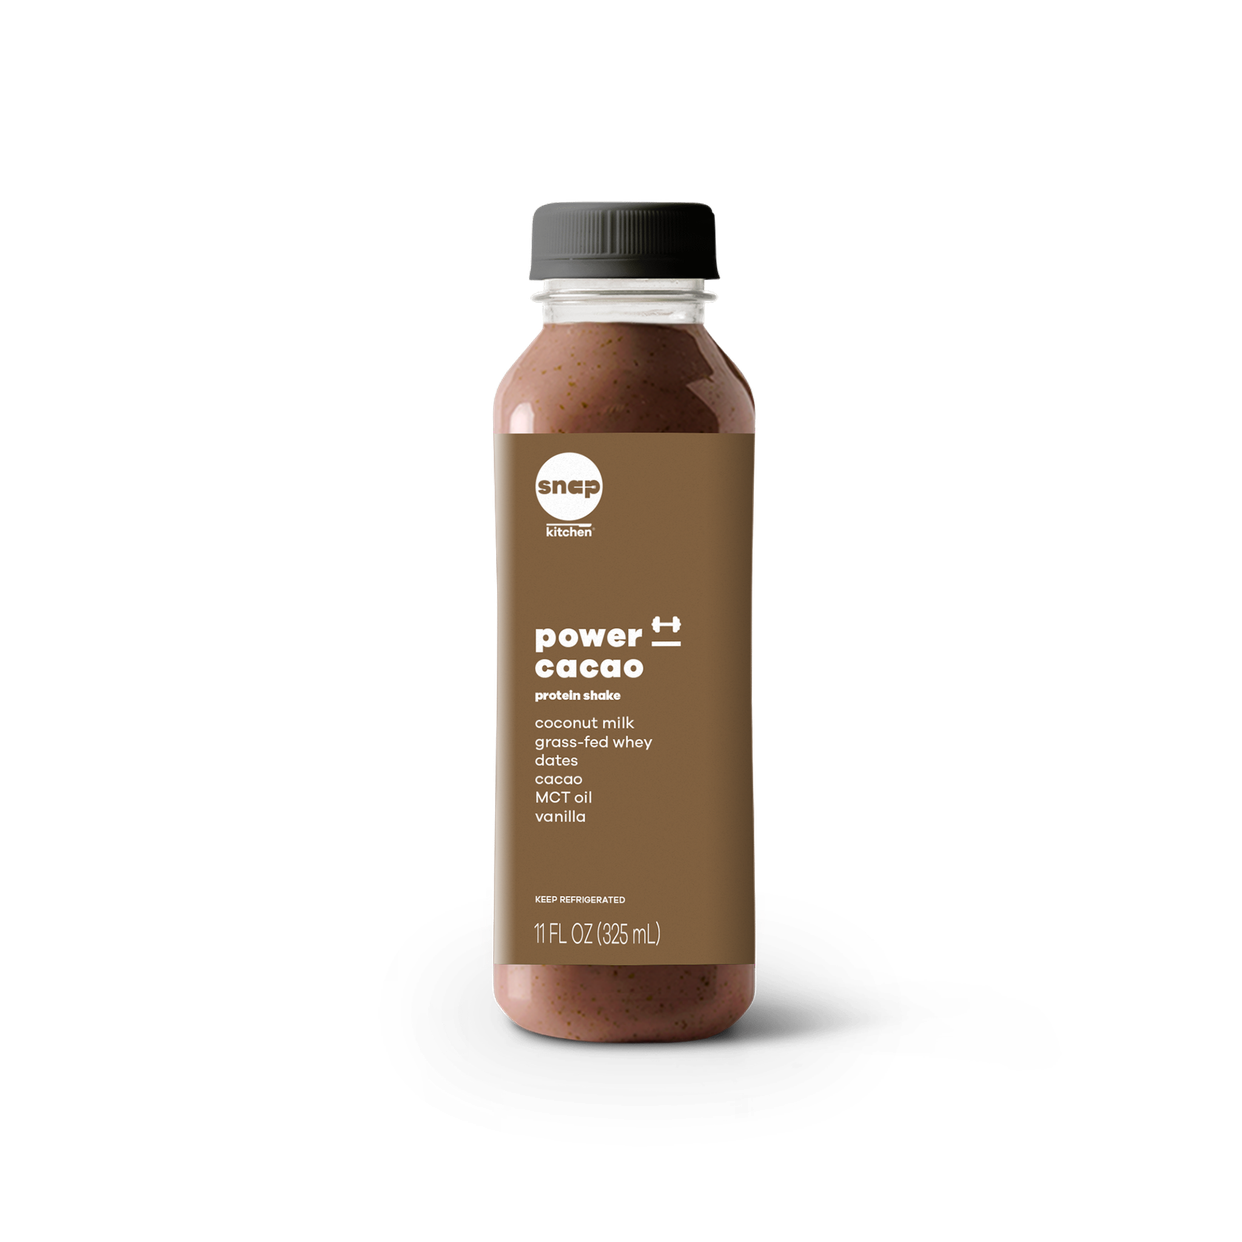 power cacao protein shake